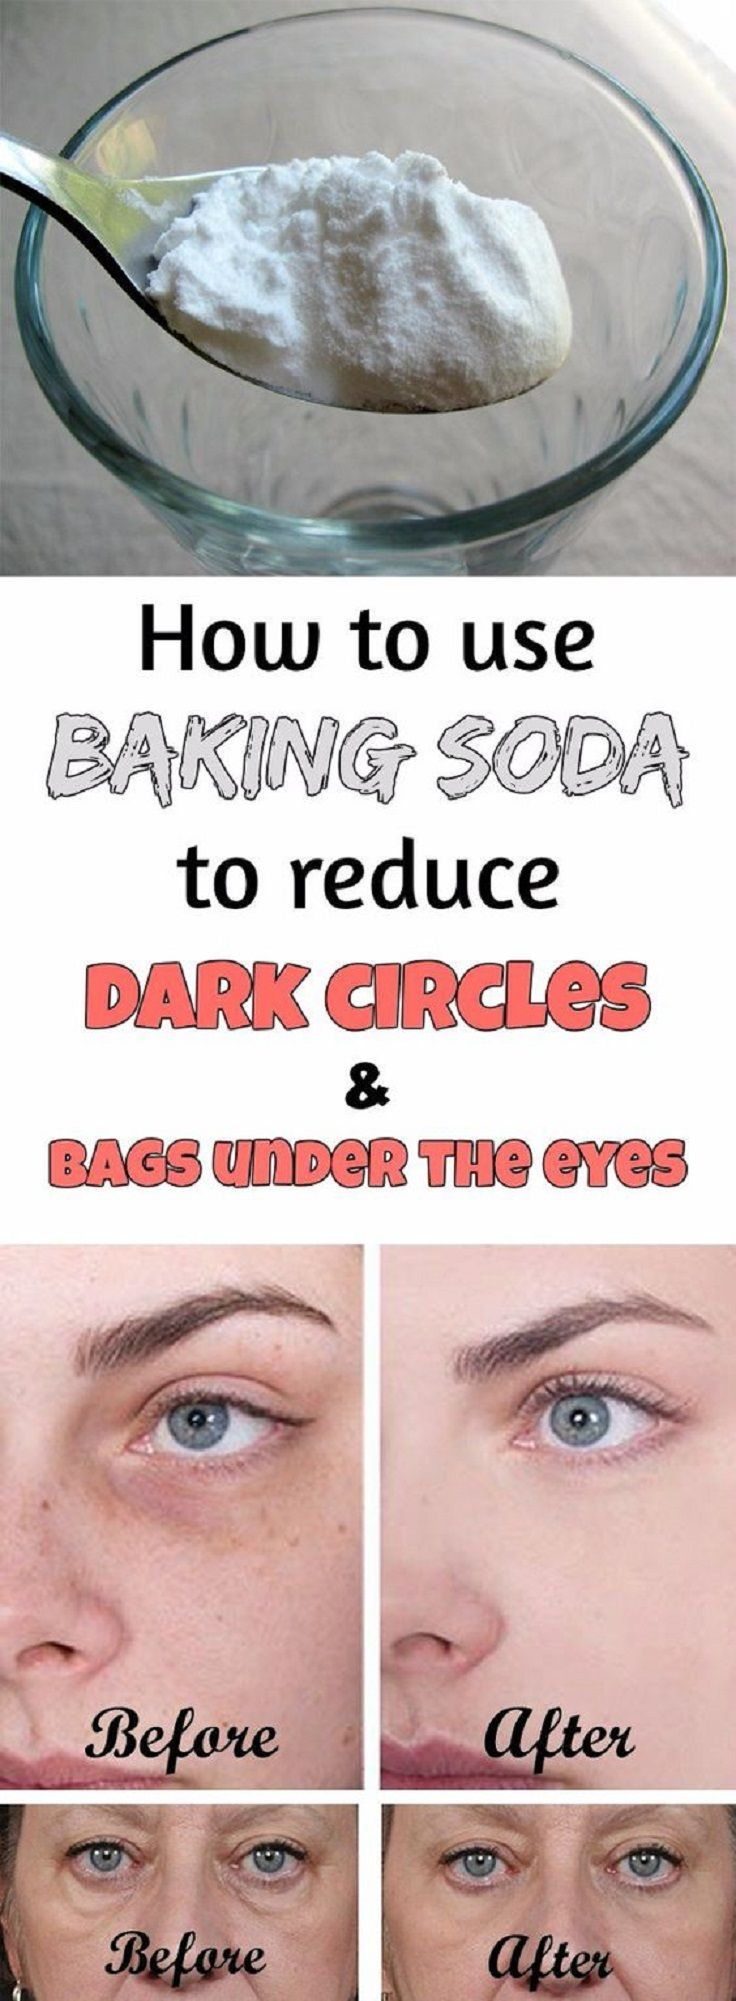 Dark Circles and Under Eye Bags Remedy with Baking Soda - 7 All-Natural Home Remedies for Dark Circles Under Eyes